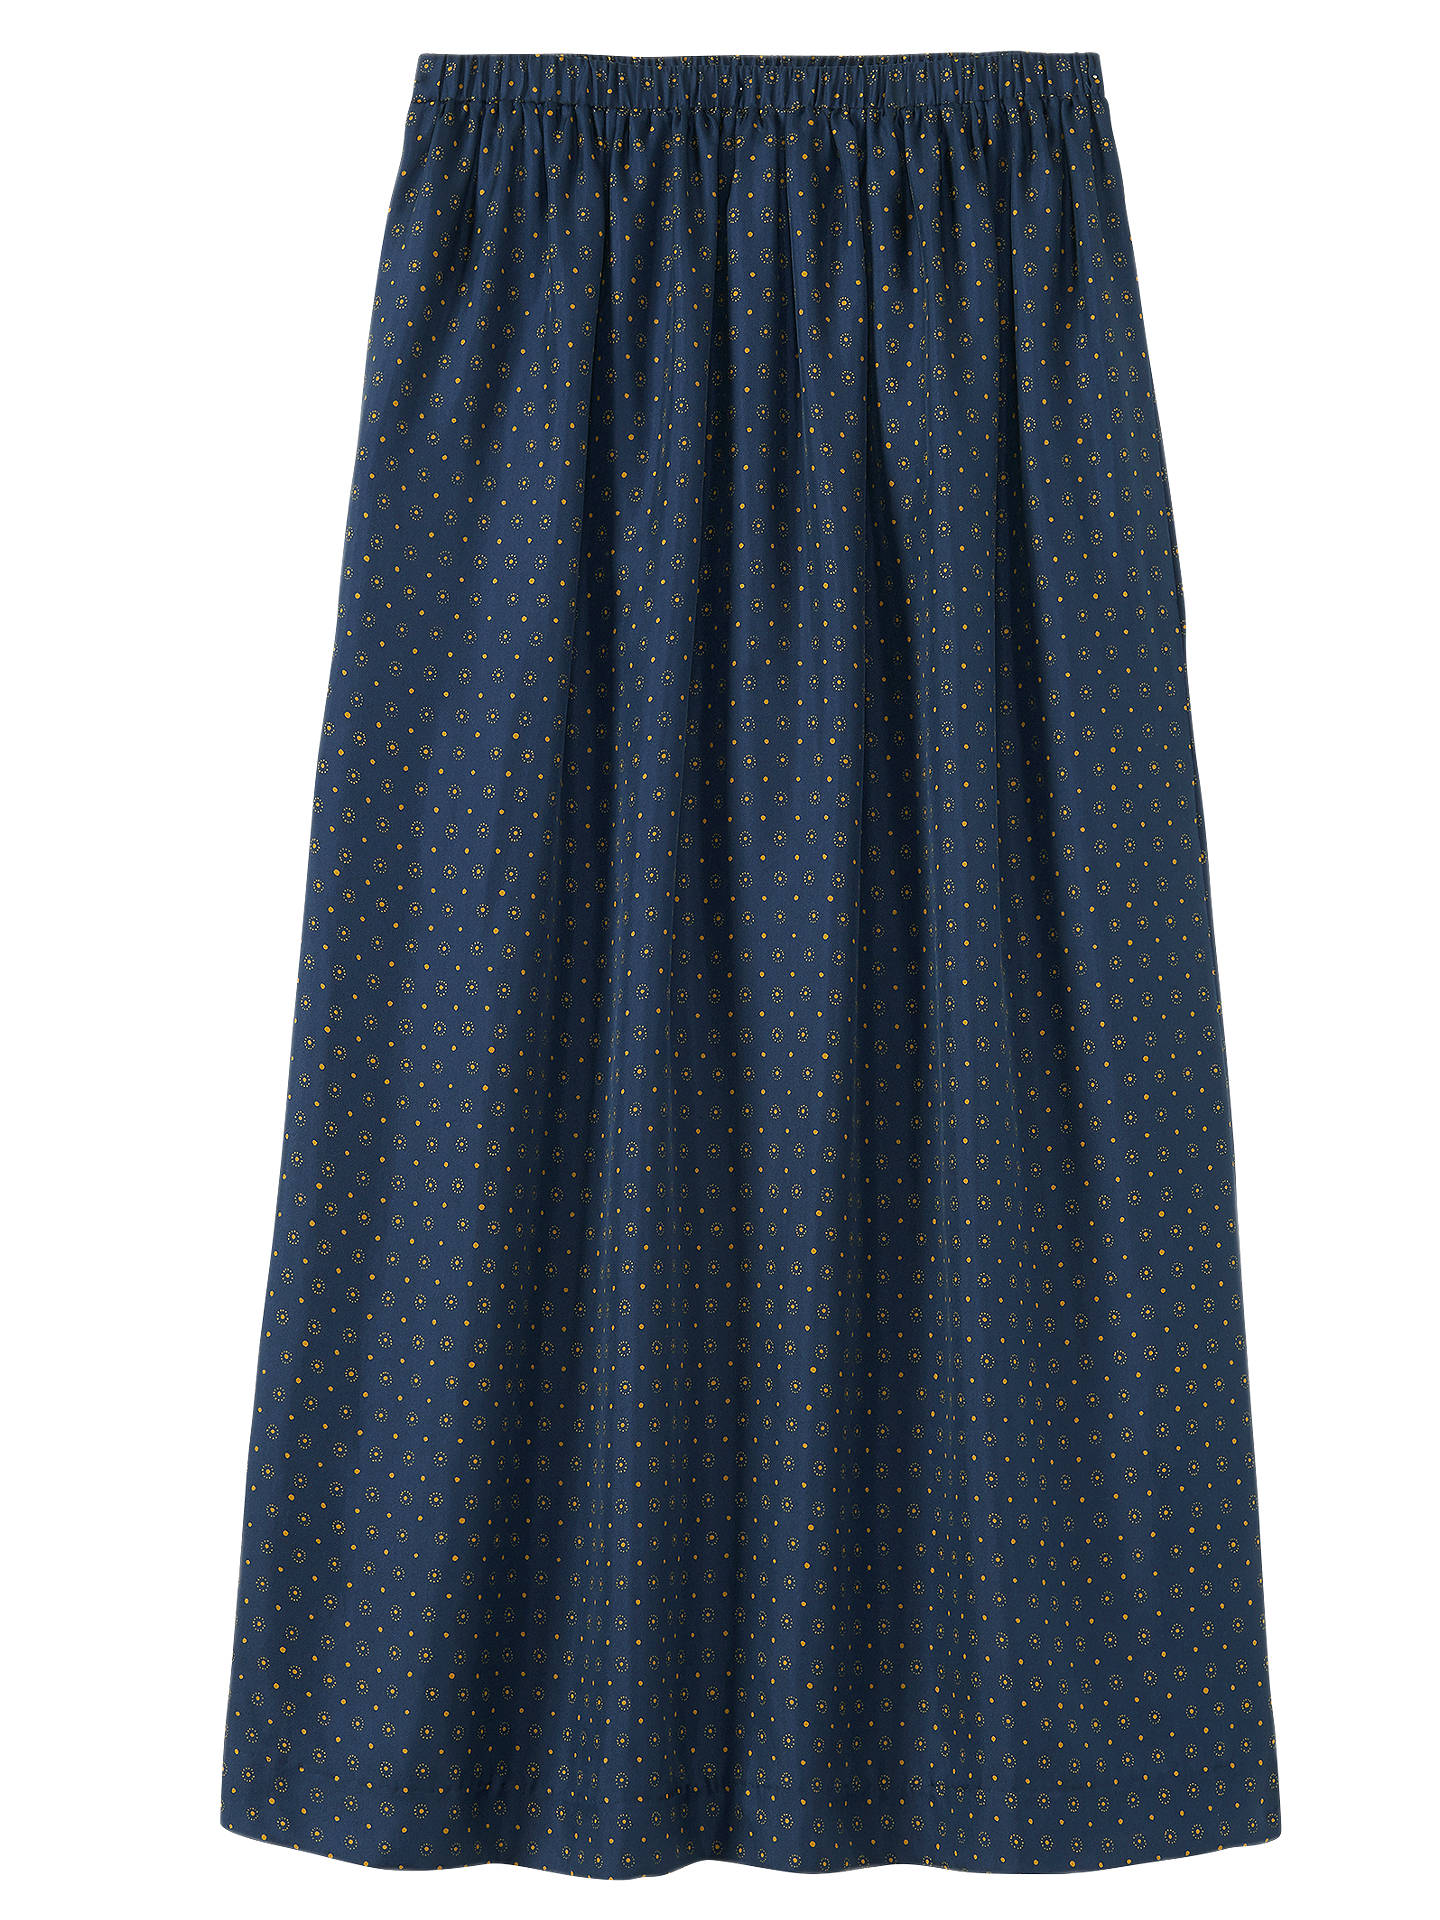 BuyToast Dayu Flared Midi Skirt, Cobalt / Harvest Gold, 8 Online at johnlewis.com